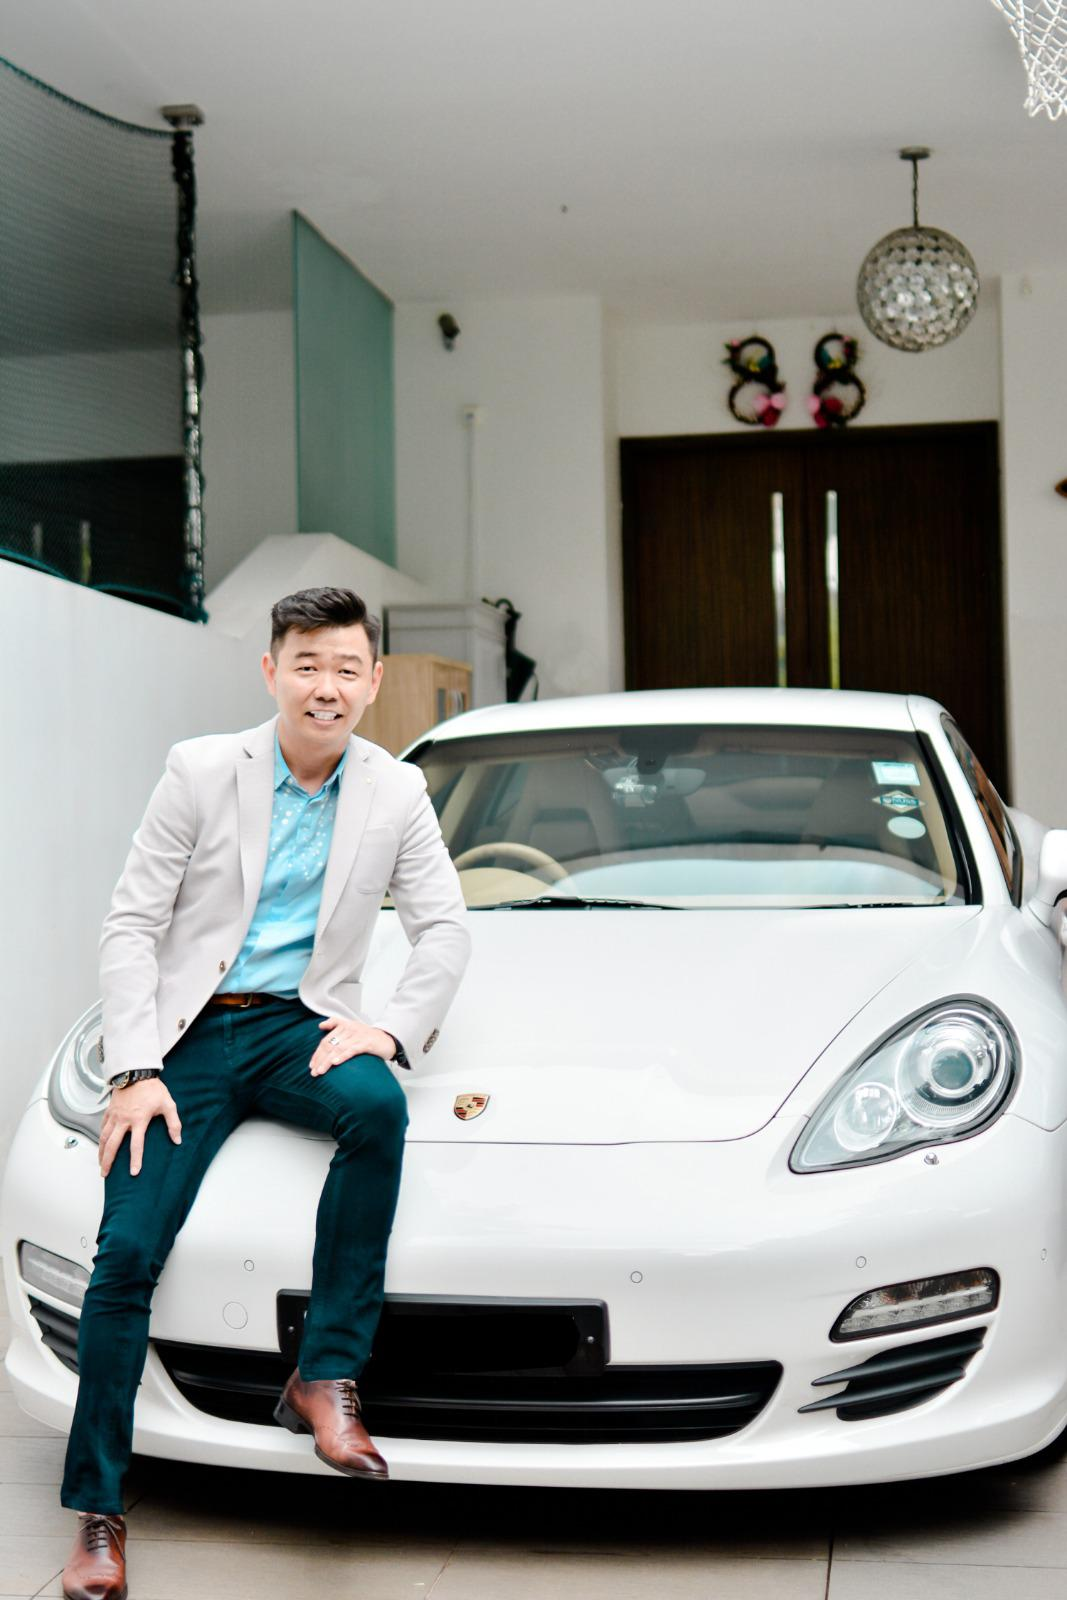 Roy Chong perched on the front of his luxury car